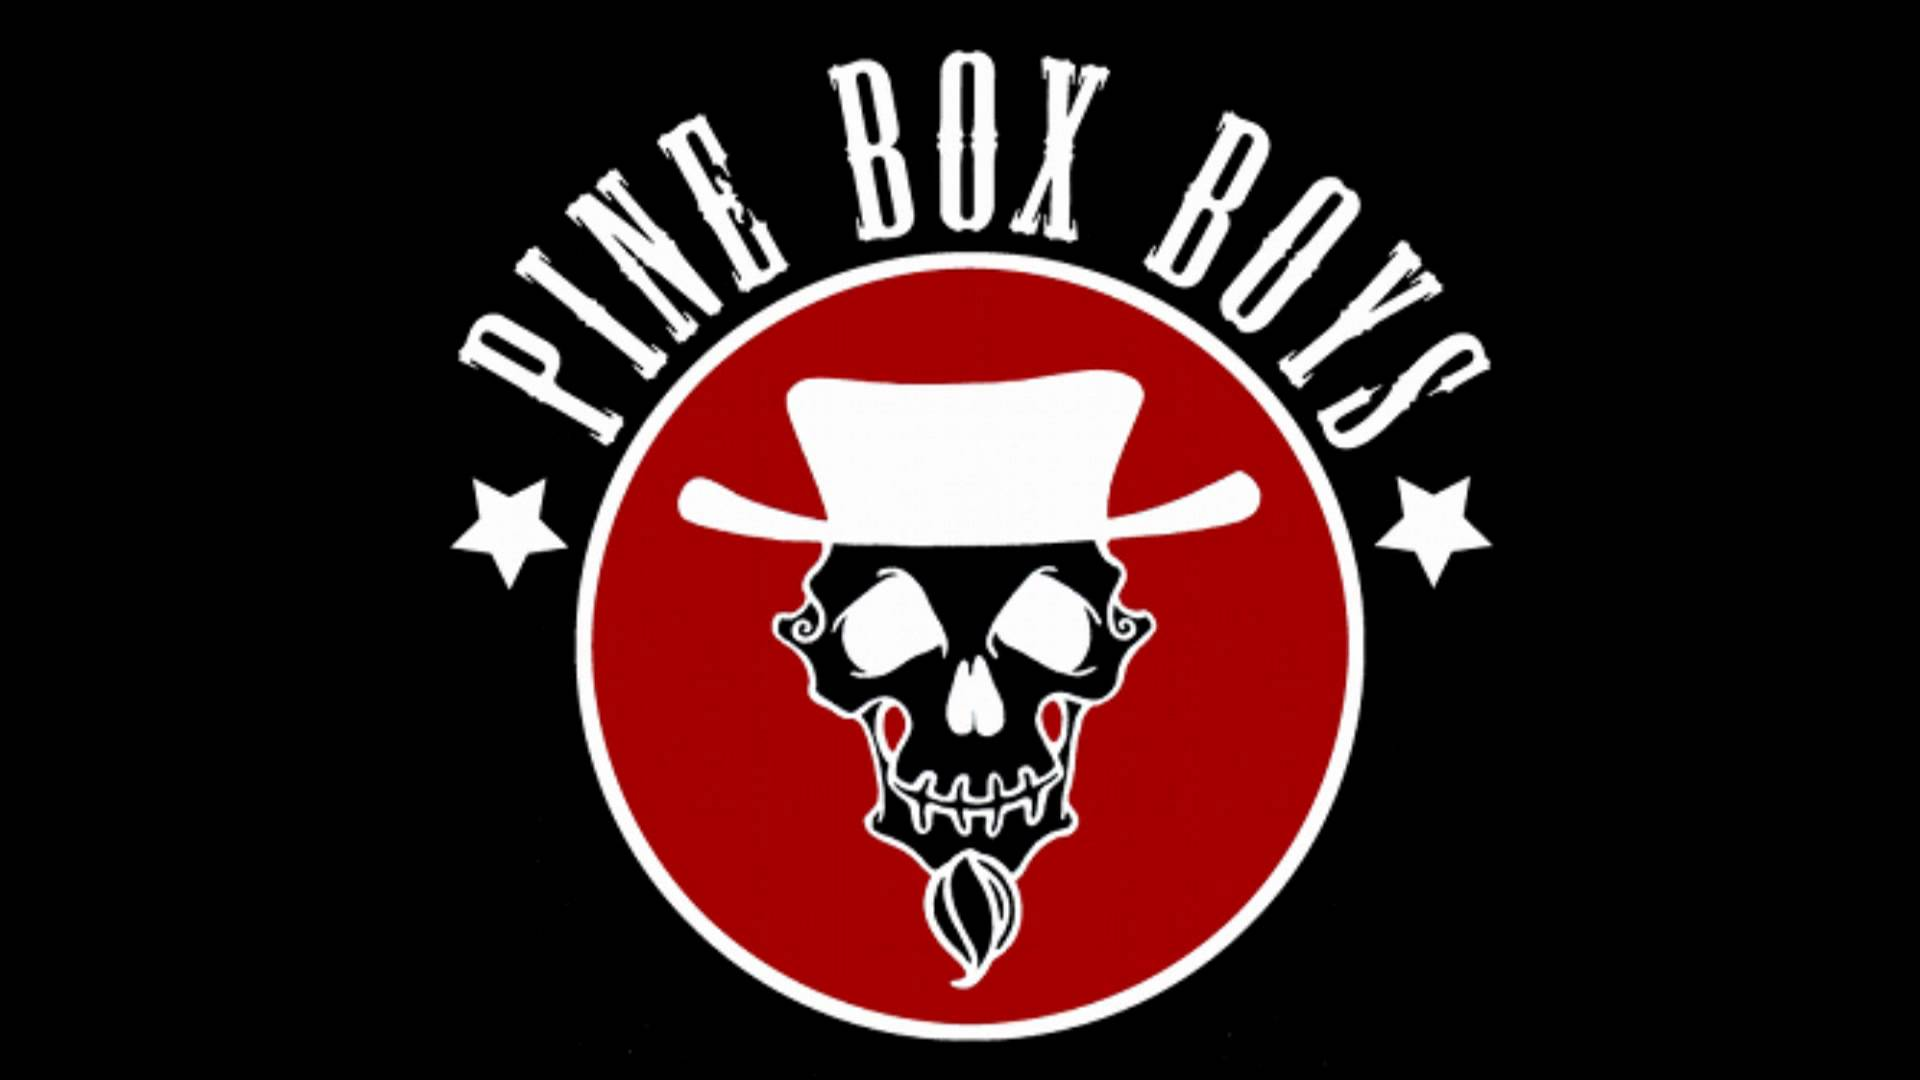 Pine Box Boys logo